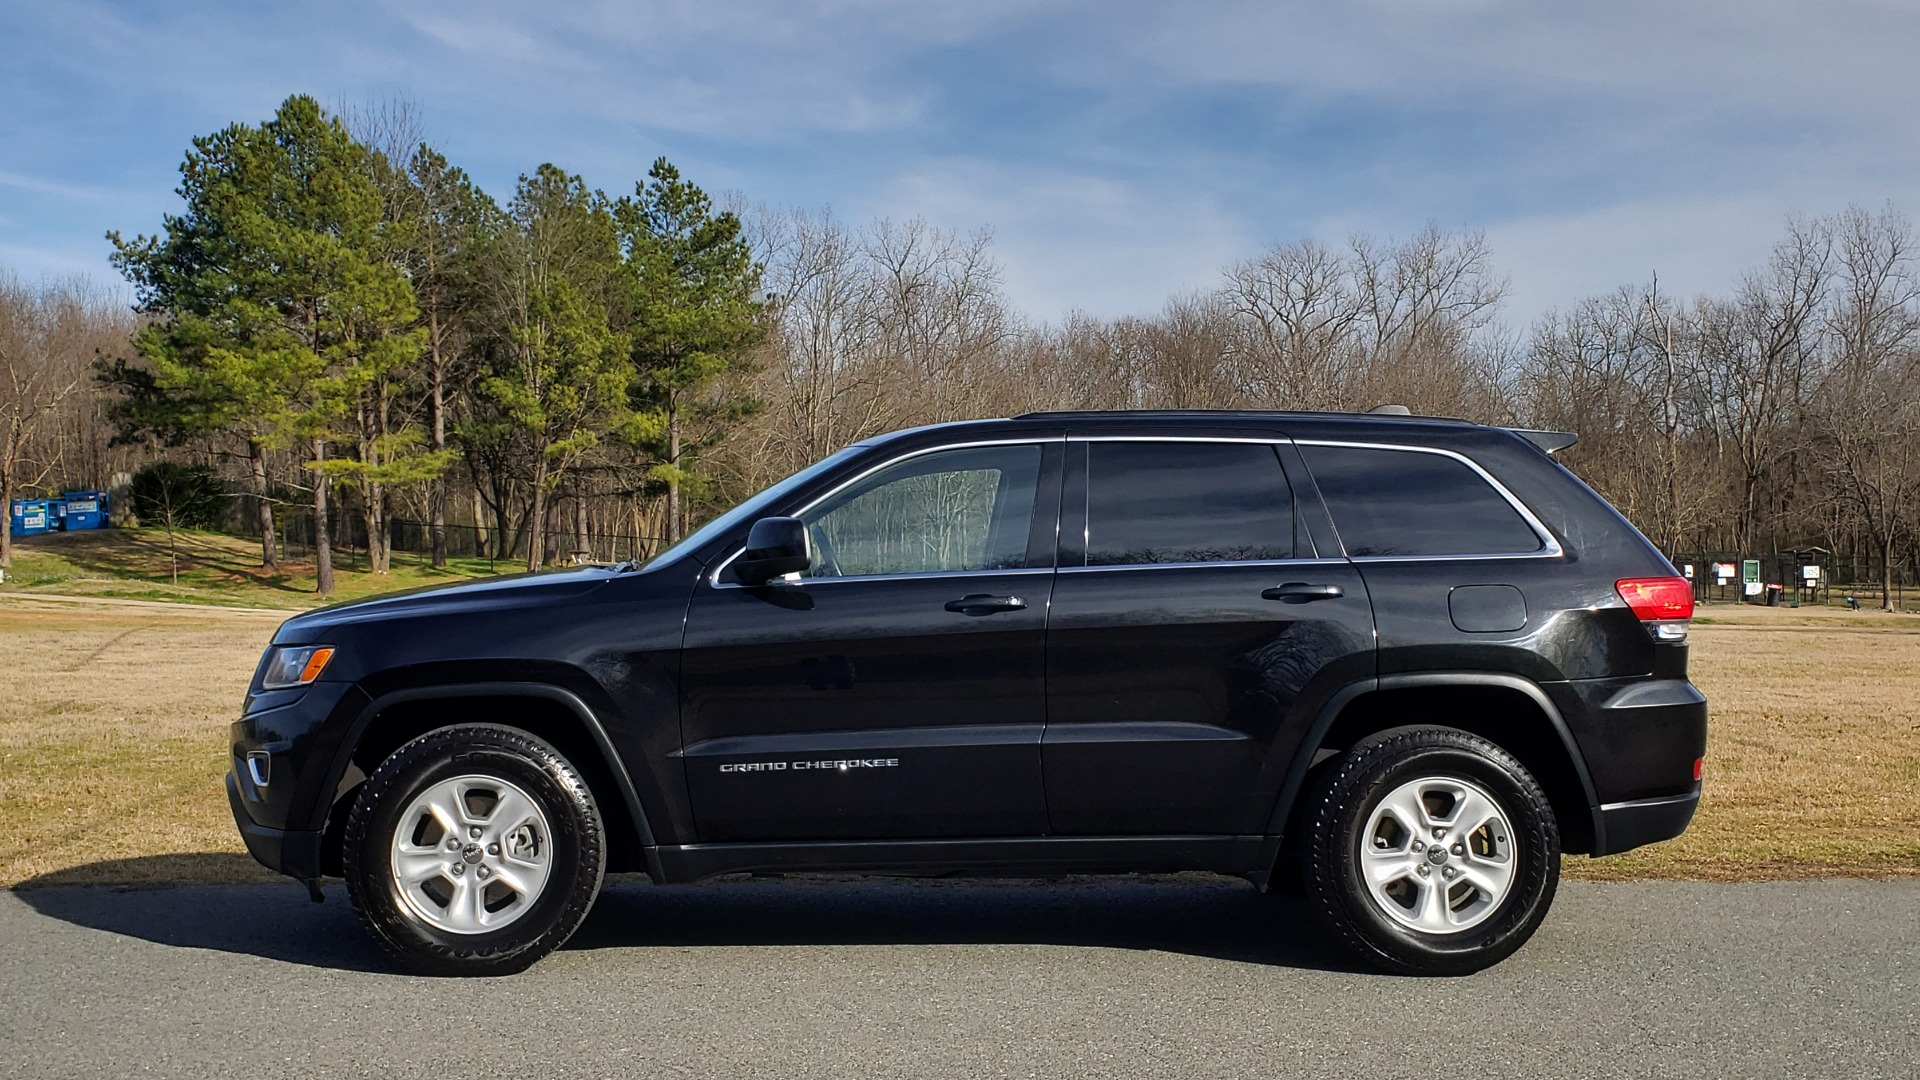 Used 2015 Jeep GRAND CHEROKEE LAREDO / 4X2 / 3.6L V6 / AUTO / 17IN WHEELS for sale Sold at Formula Imports in Charlotte NC 28227 2